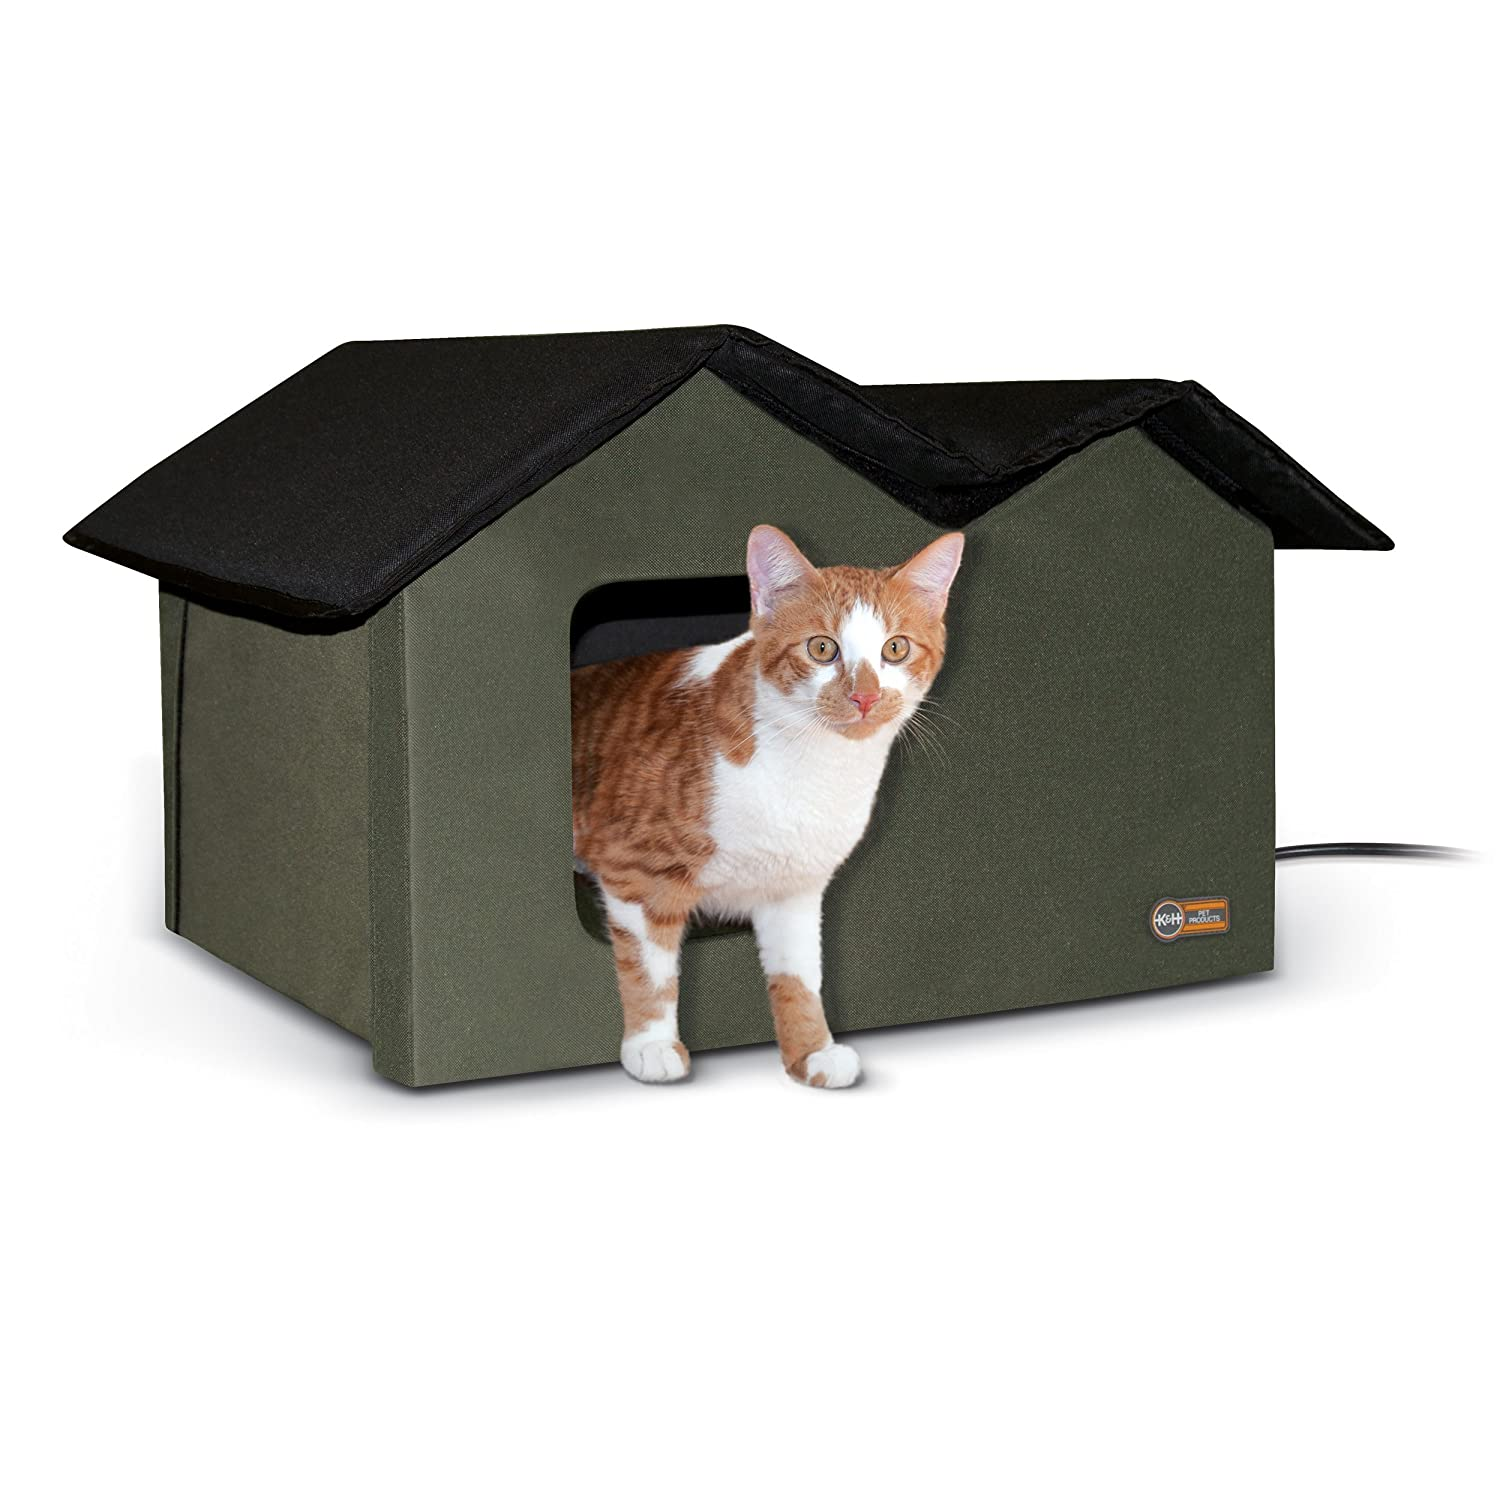 Top 10 Best Insulated Cat Houses